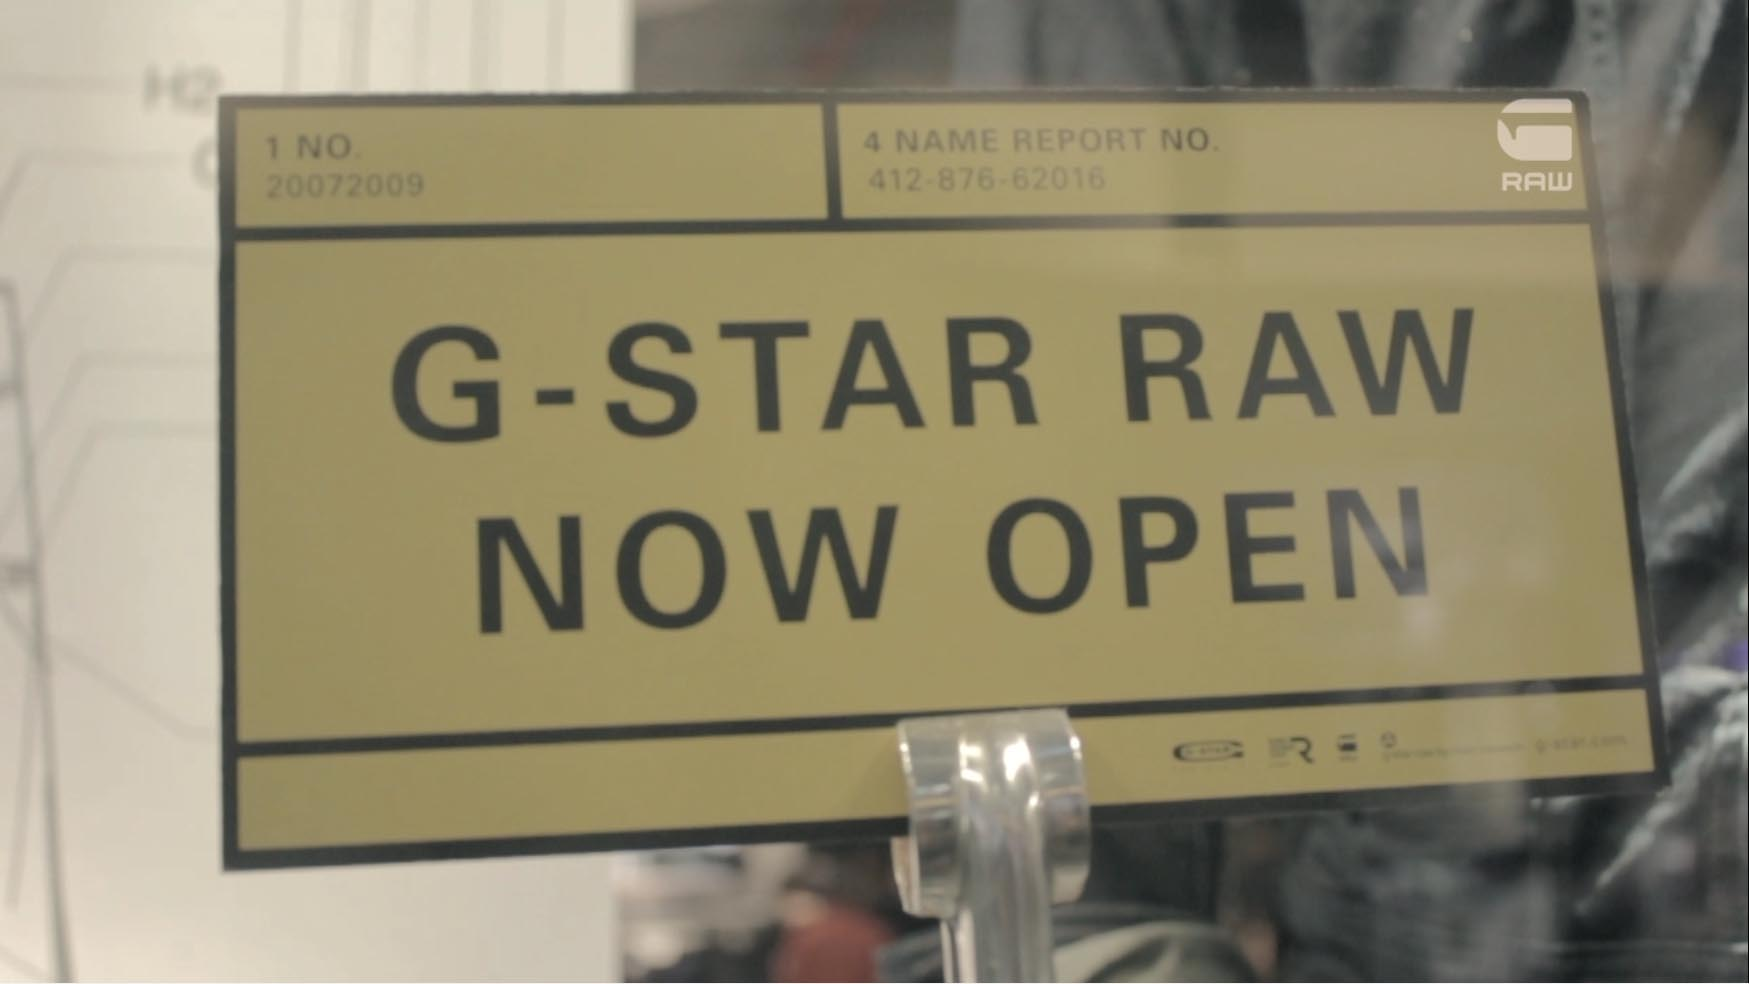 G-Star RAW | Goldfish Live